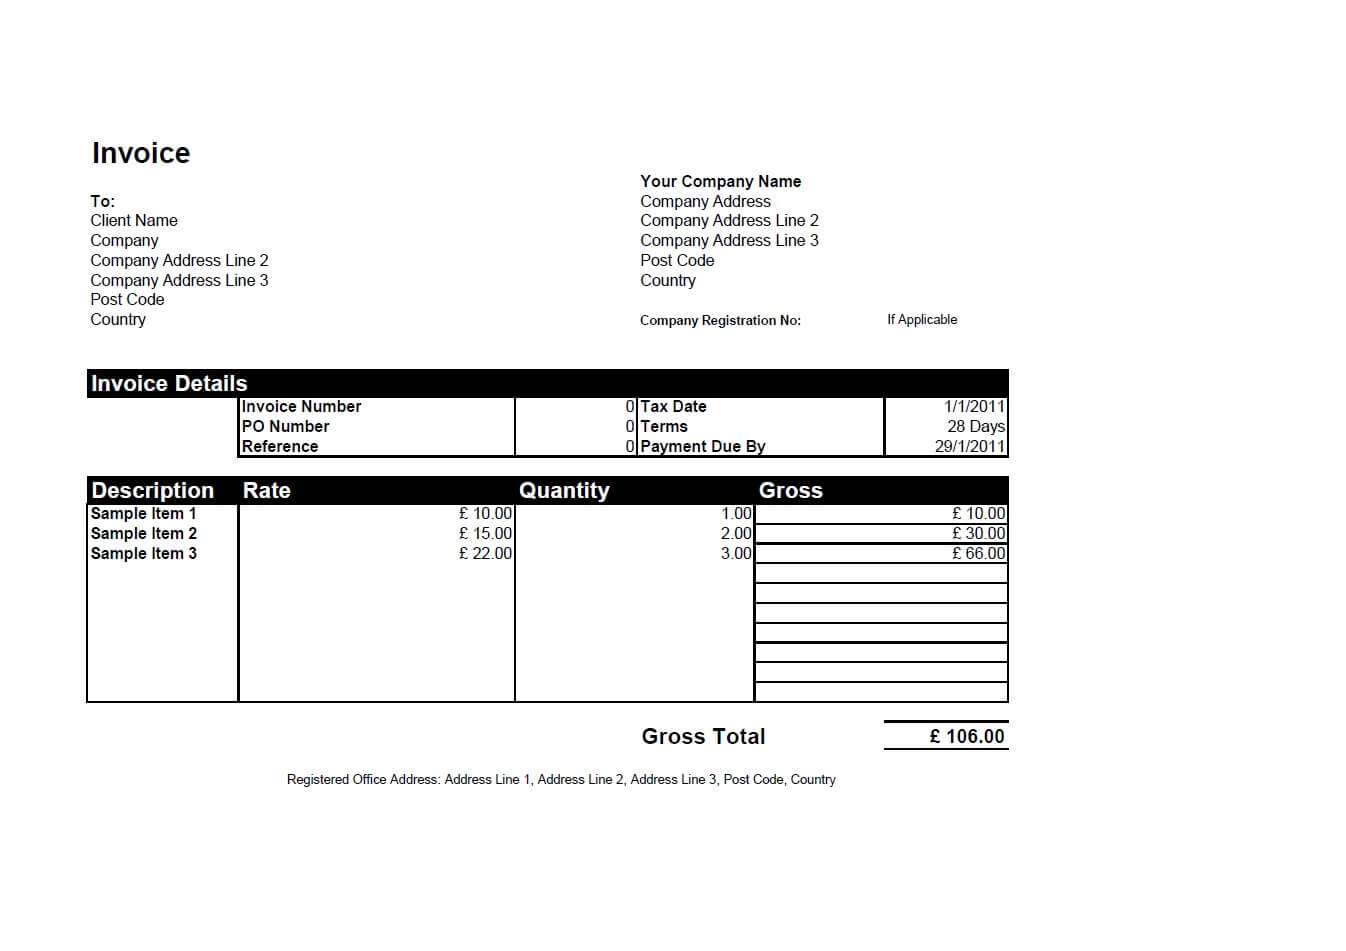 billing invoice template free download | invoice example, Invoice templates